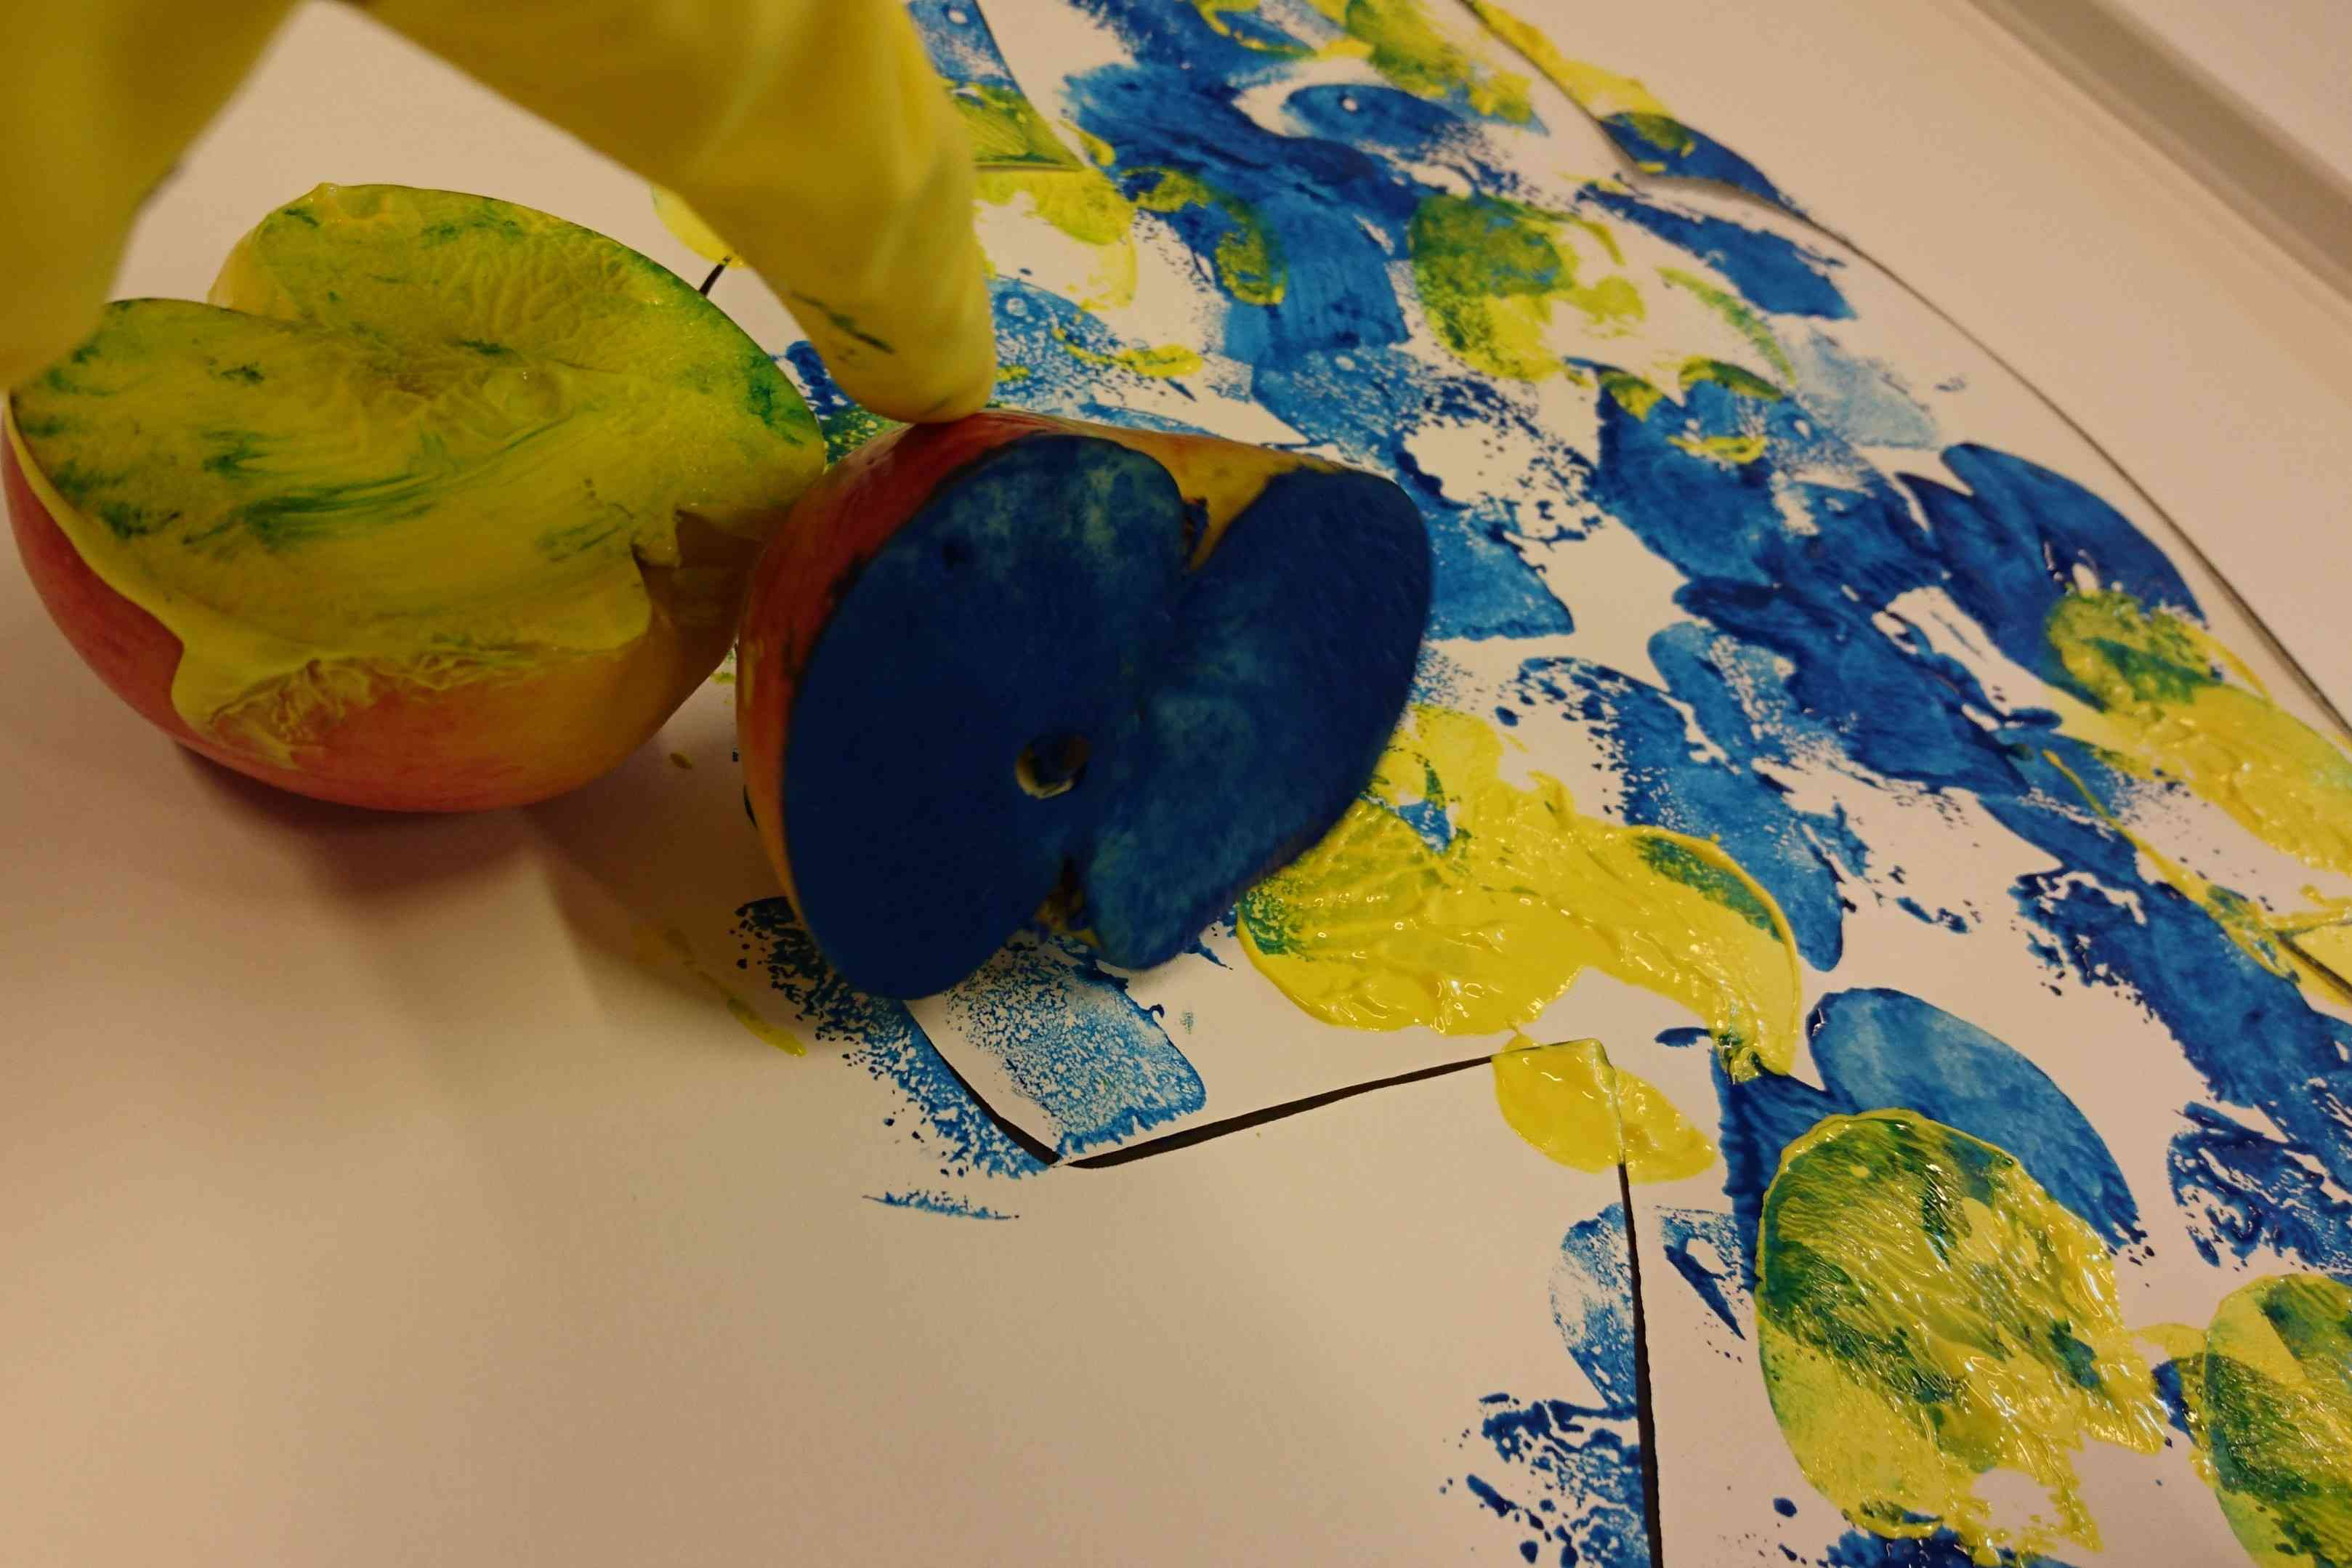 A halved apple covered in blue and yellow paint being used to stamp paper